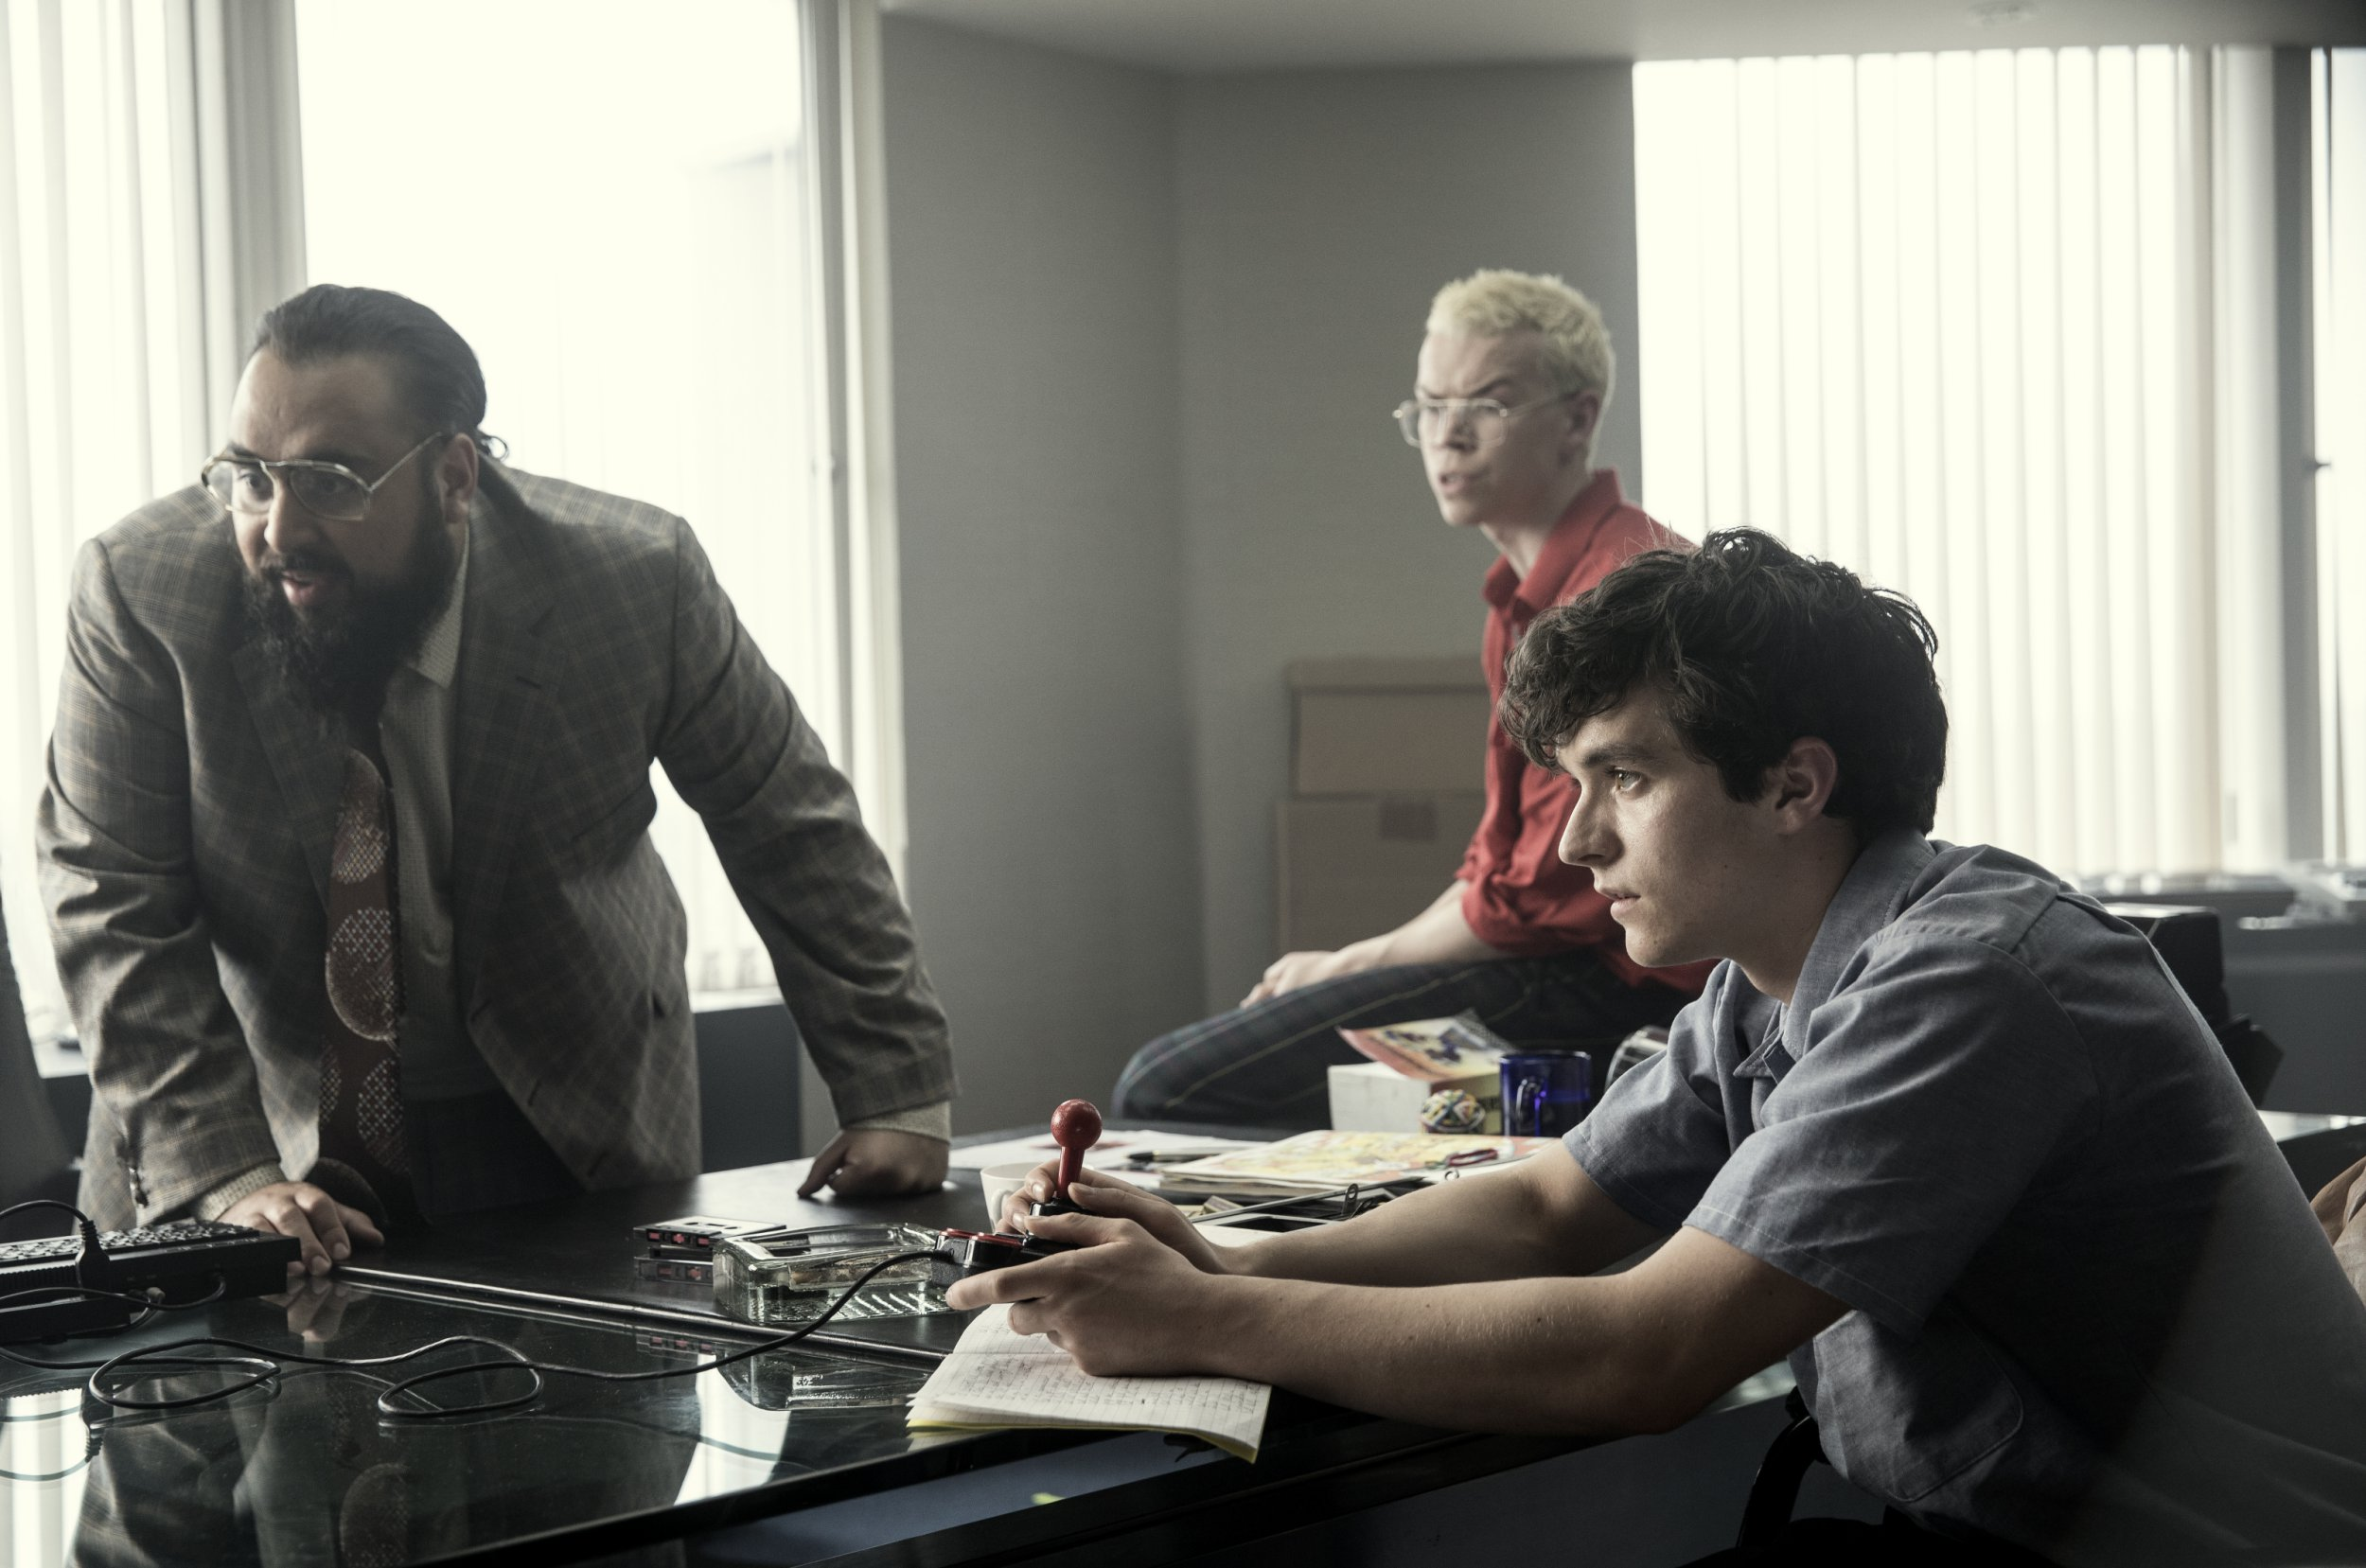 Black Mirror creator Charlie Brooker rules out more interactive episodes after Bandersnatch